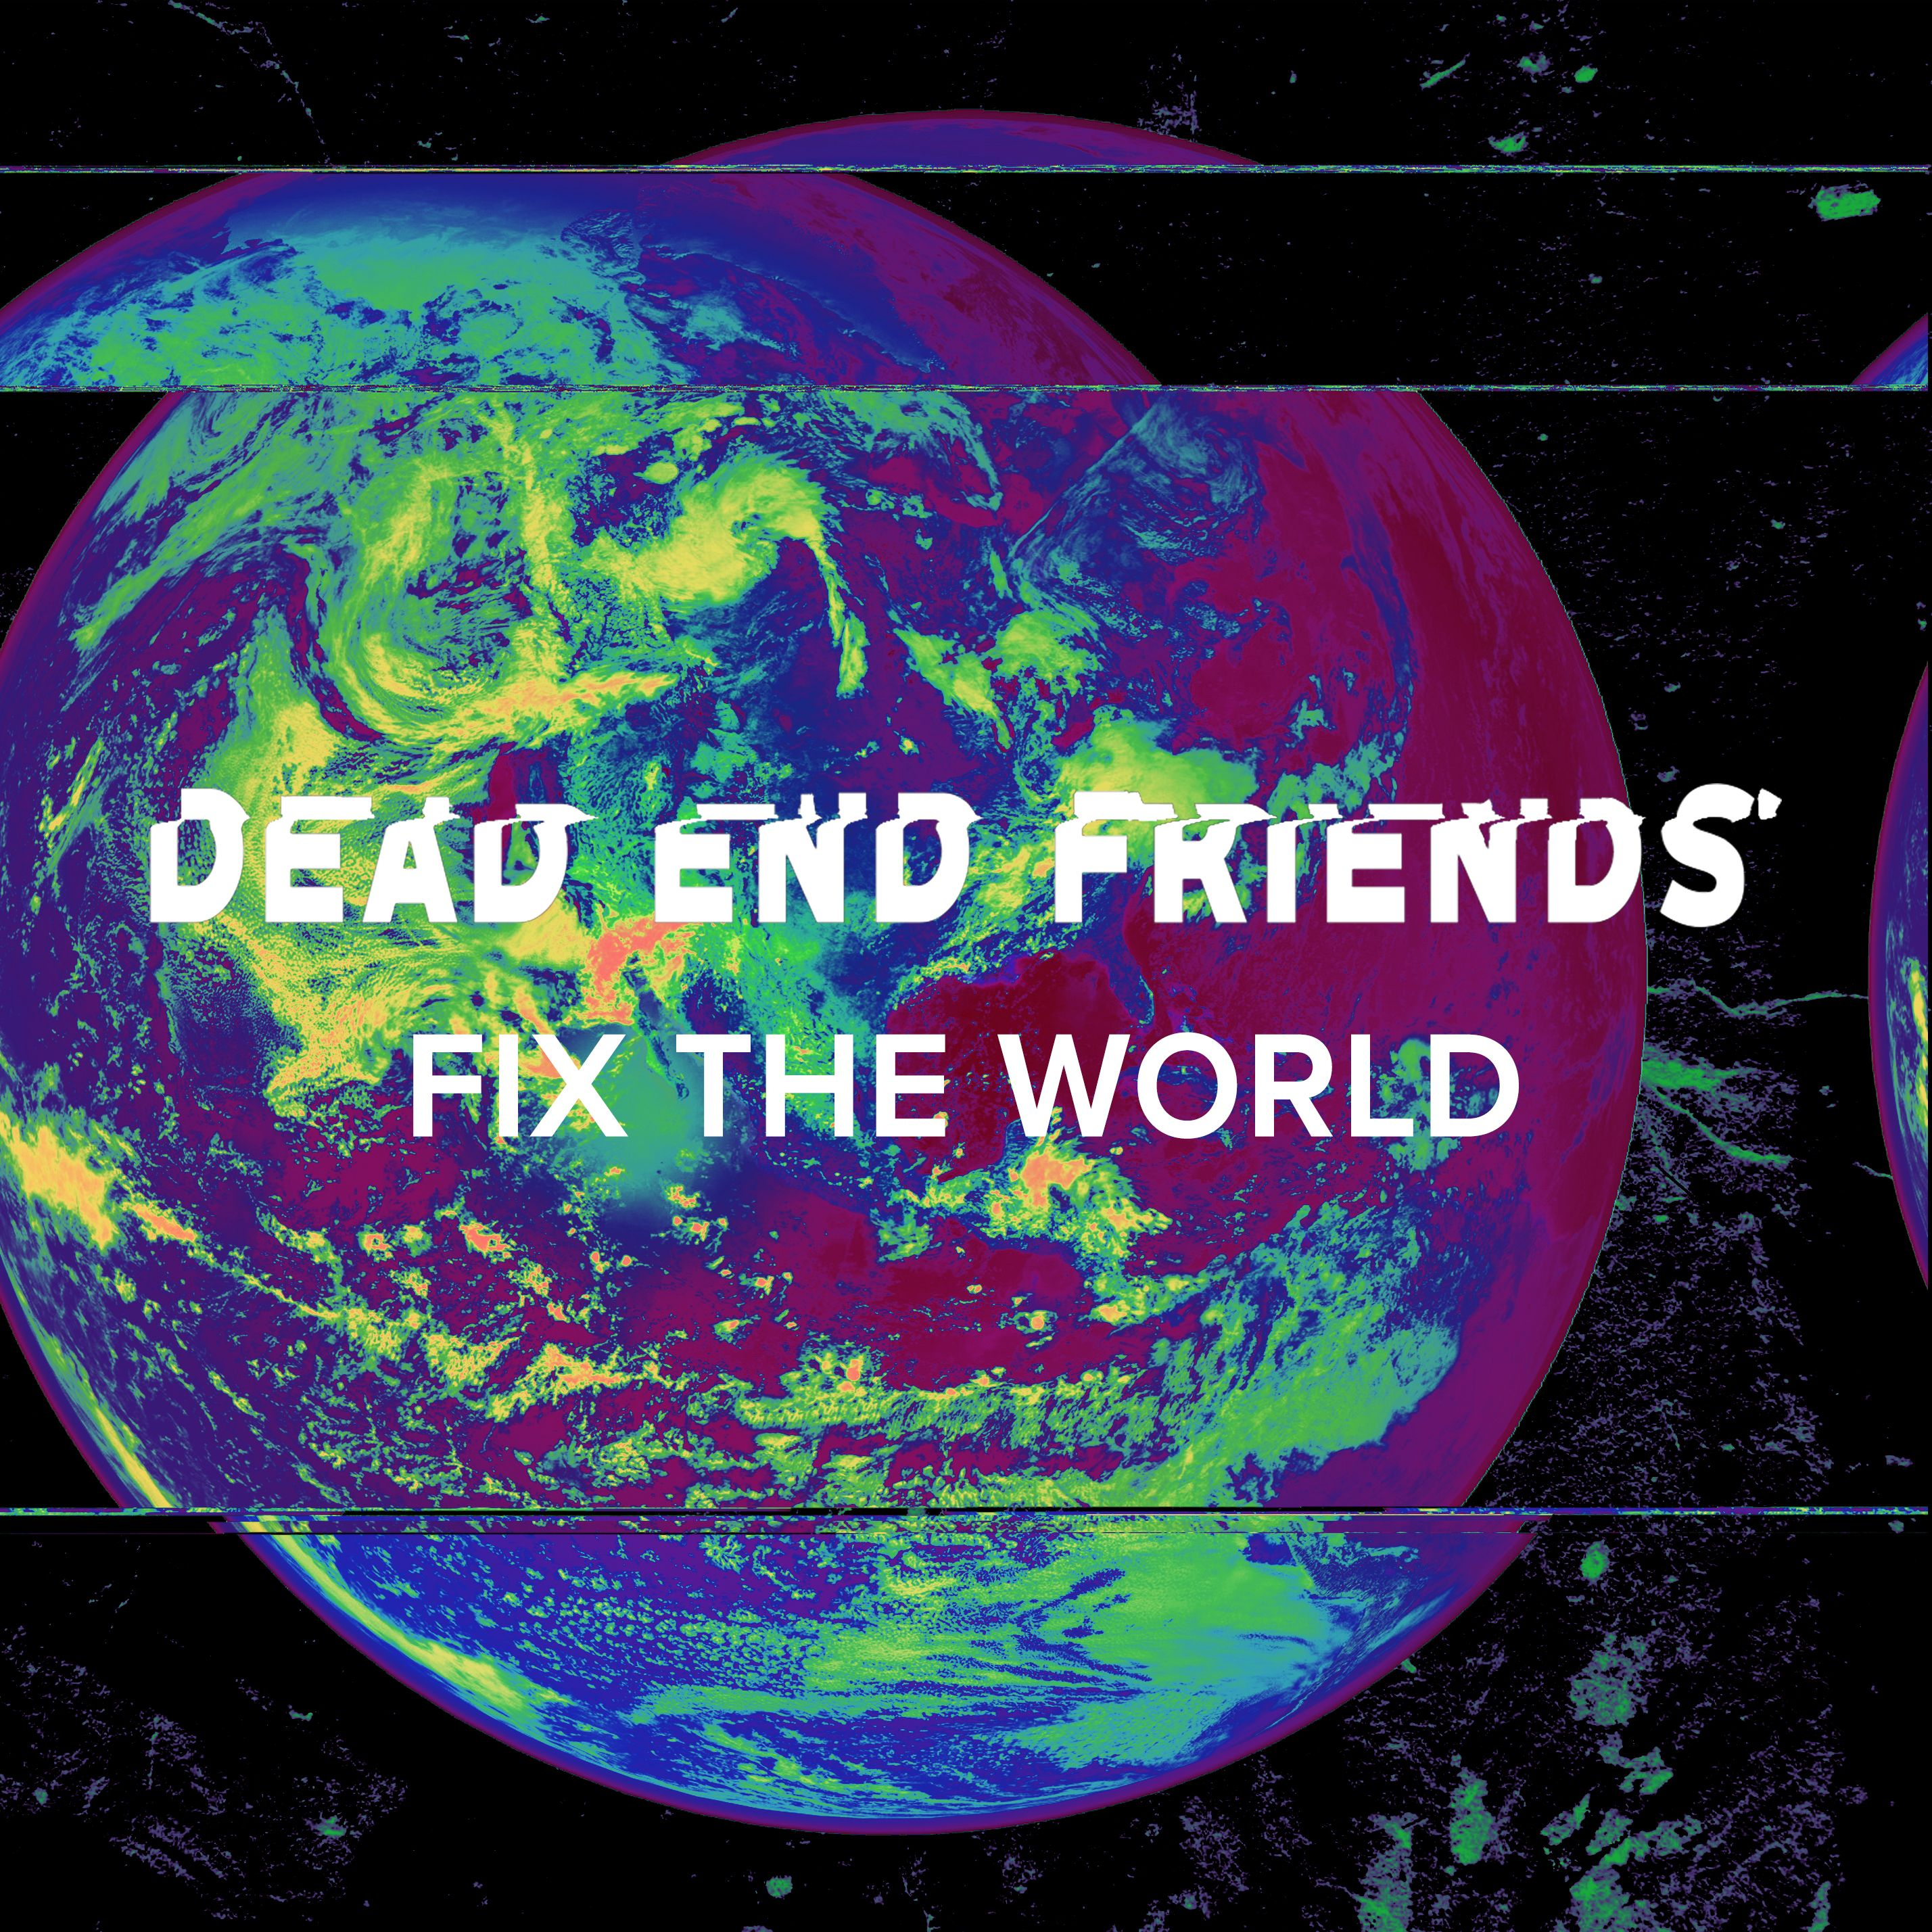 Dead End Friends Fix The World